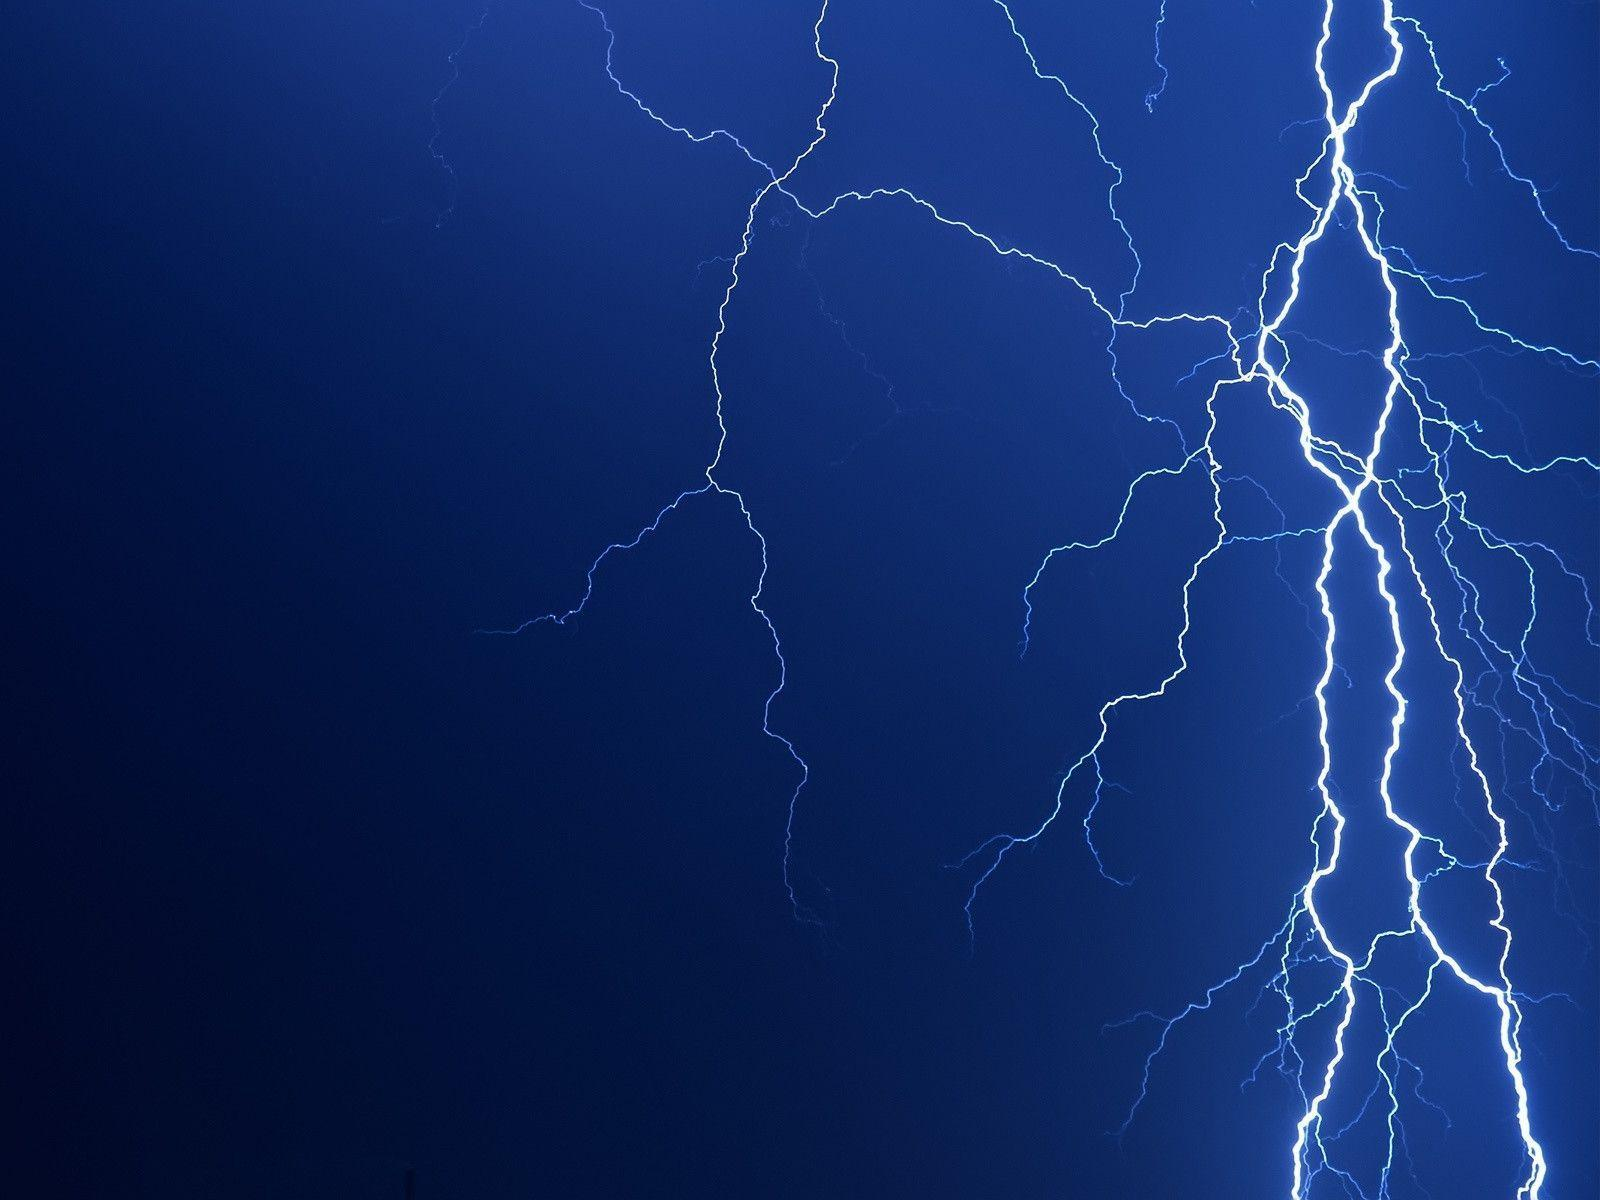 Download lightning bolt wallpaper|naeterspeddfis1985のブログ